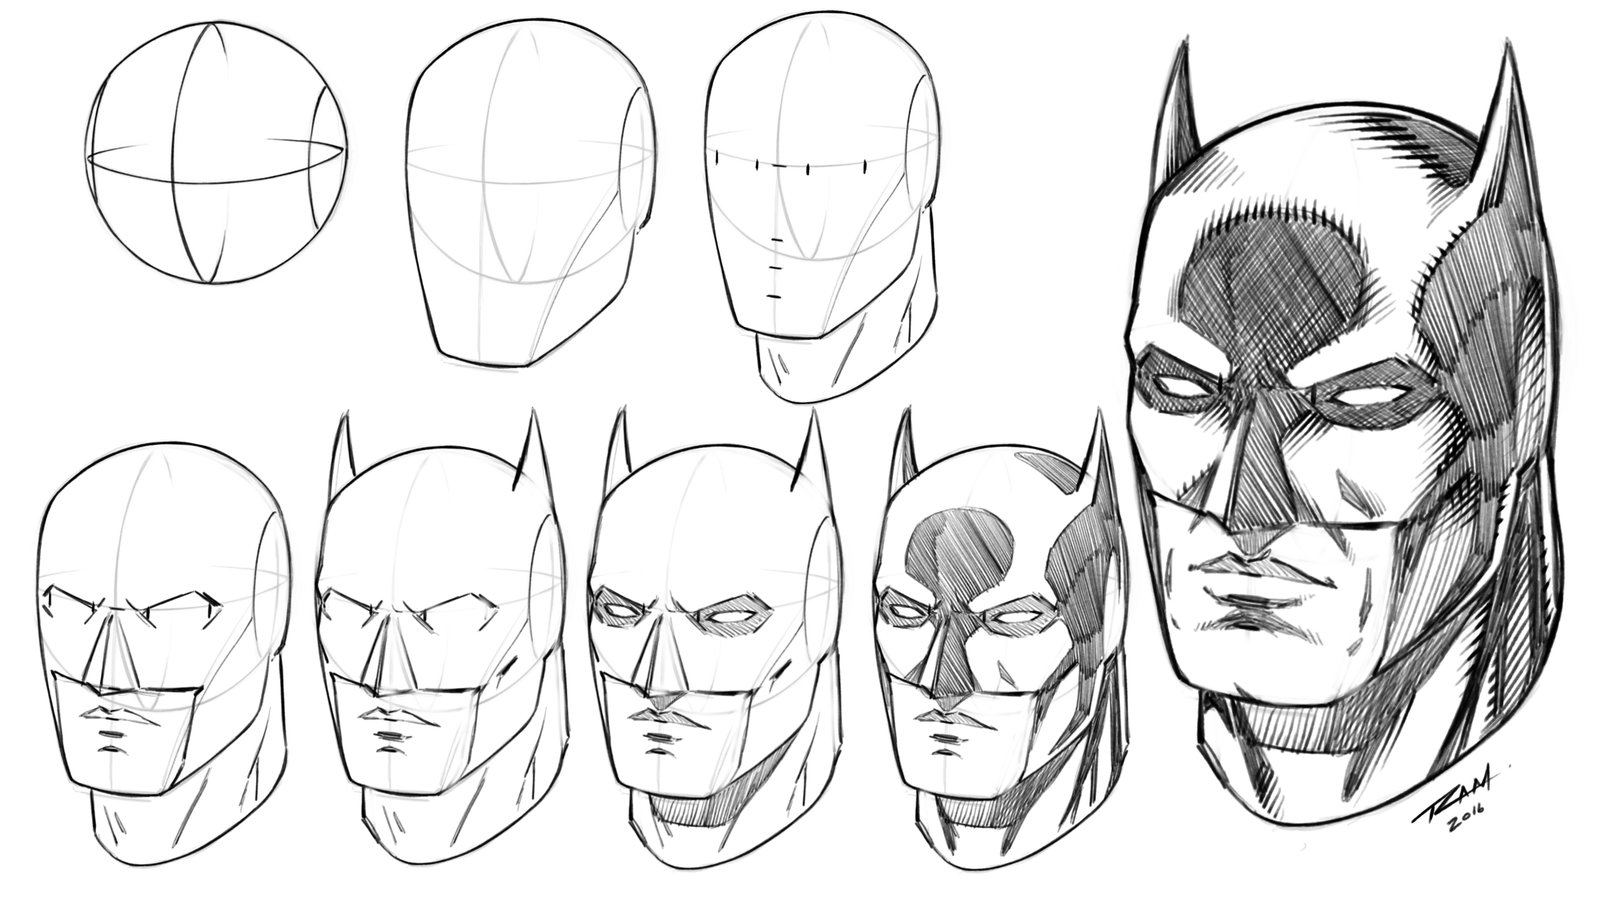 Drawn masks face drawing To Tutorial on Tutorial by